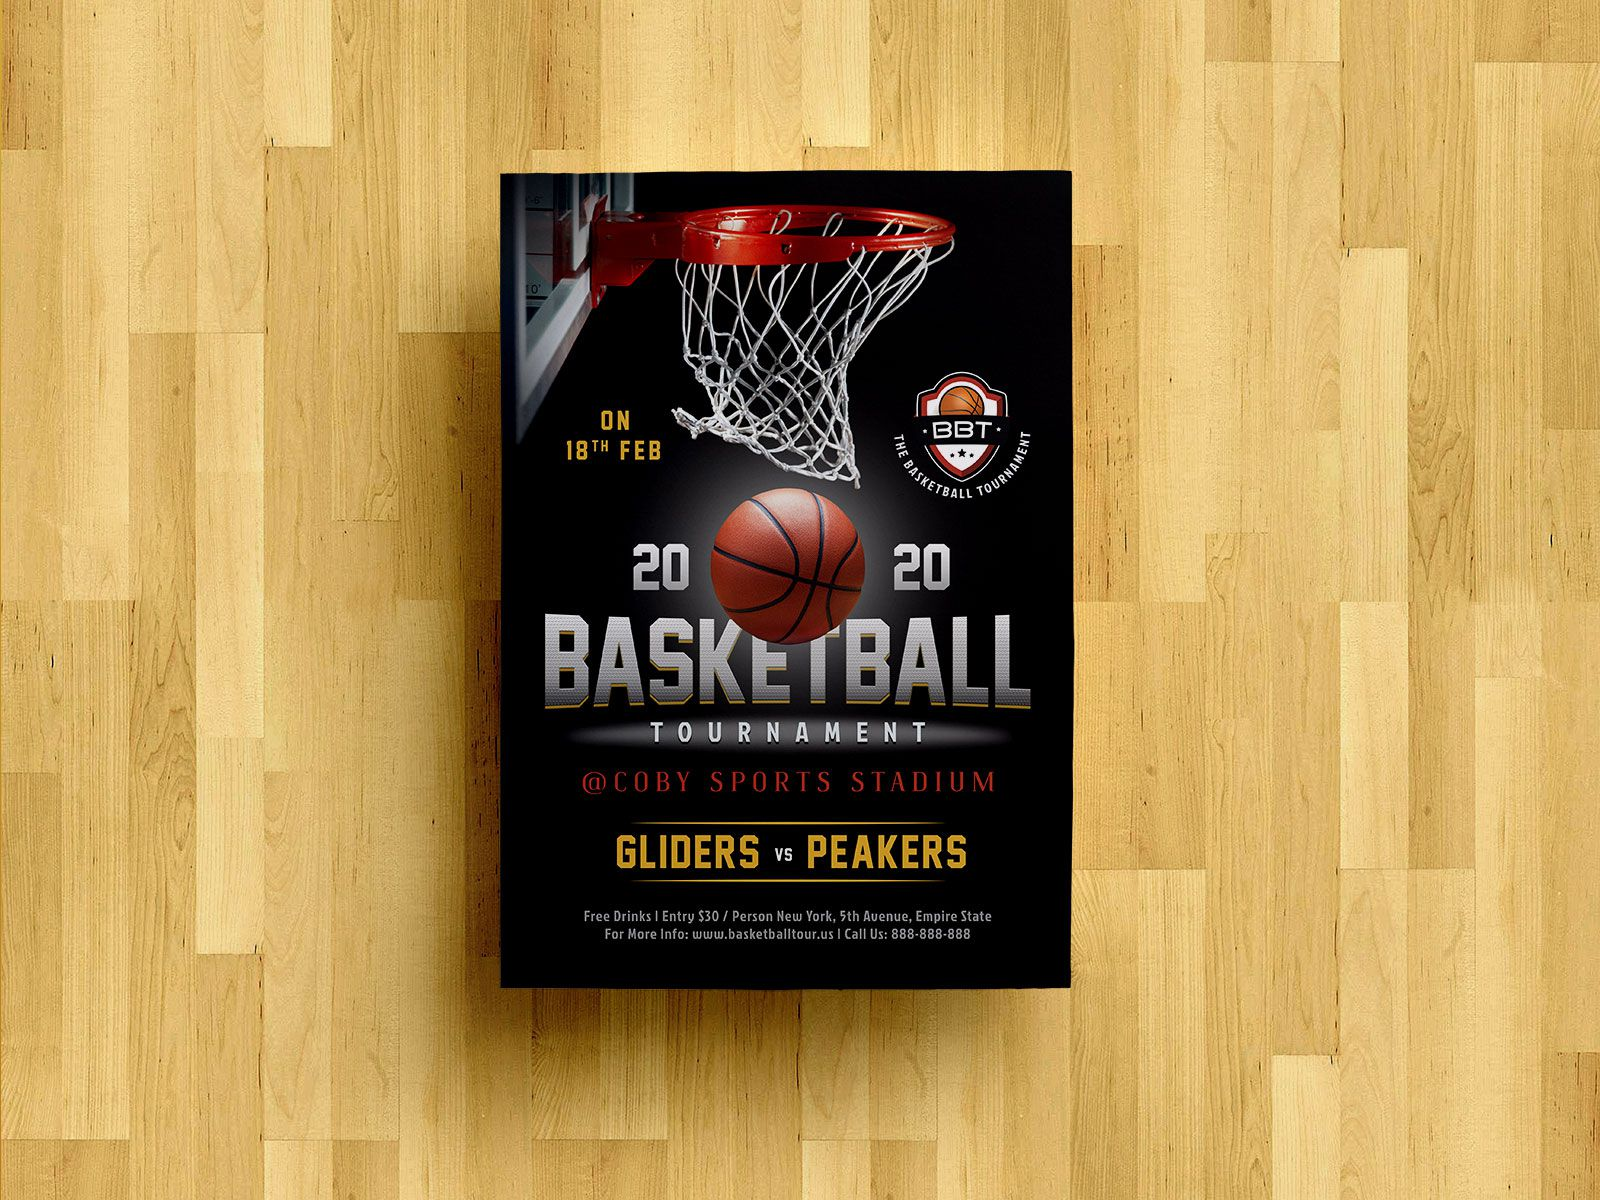 008 Dreaded Basketball Flyer Template Free Image  Brochure Tryout CampFull